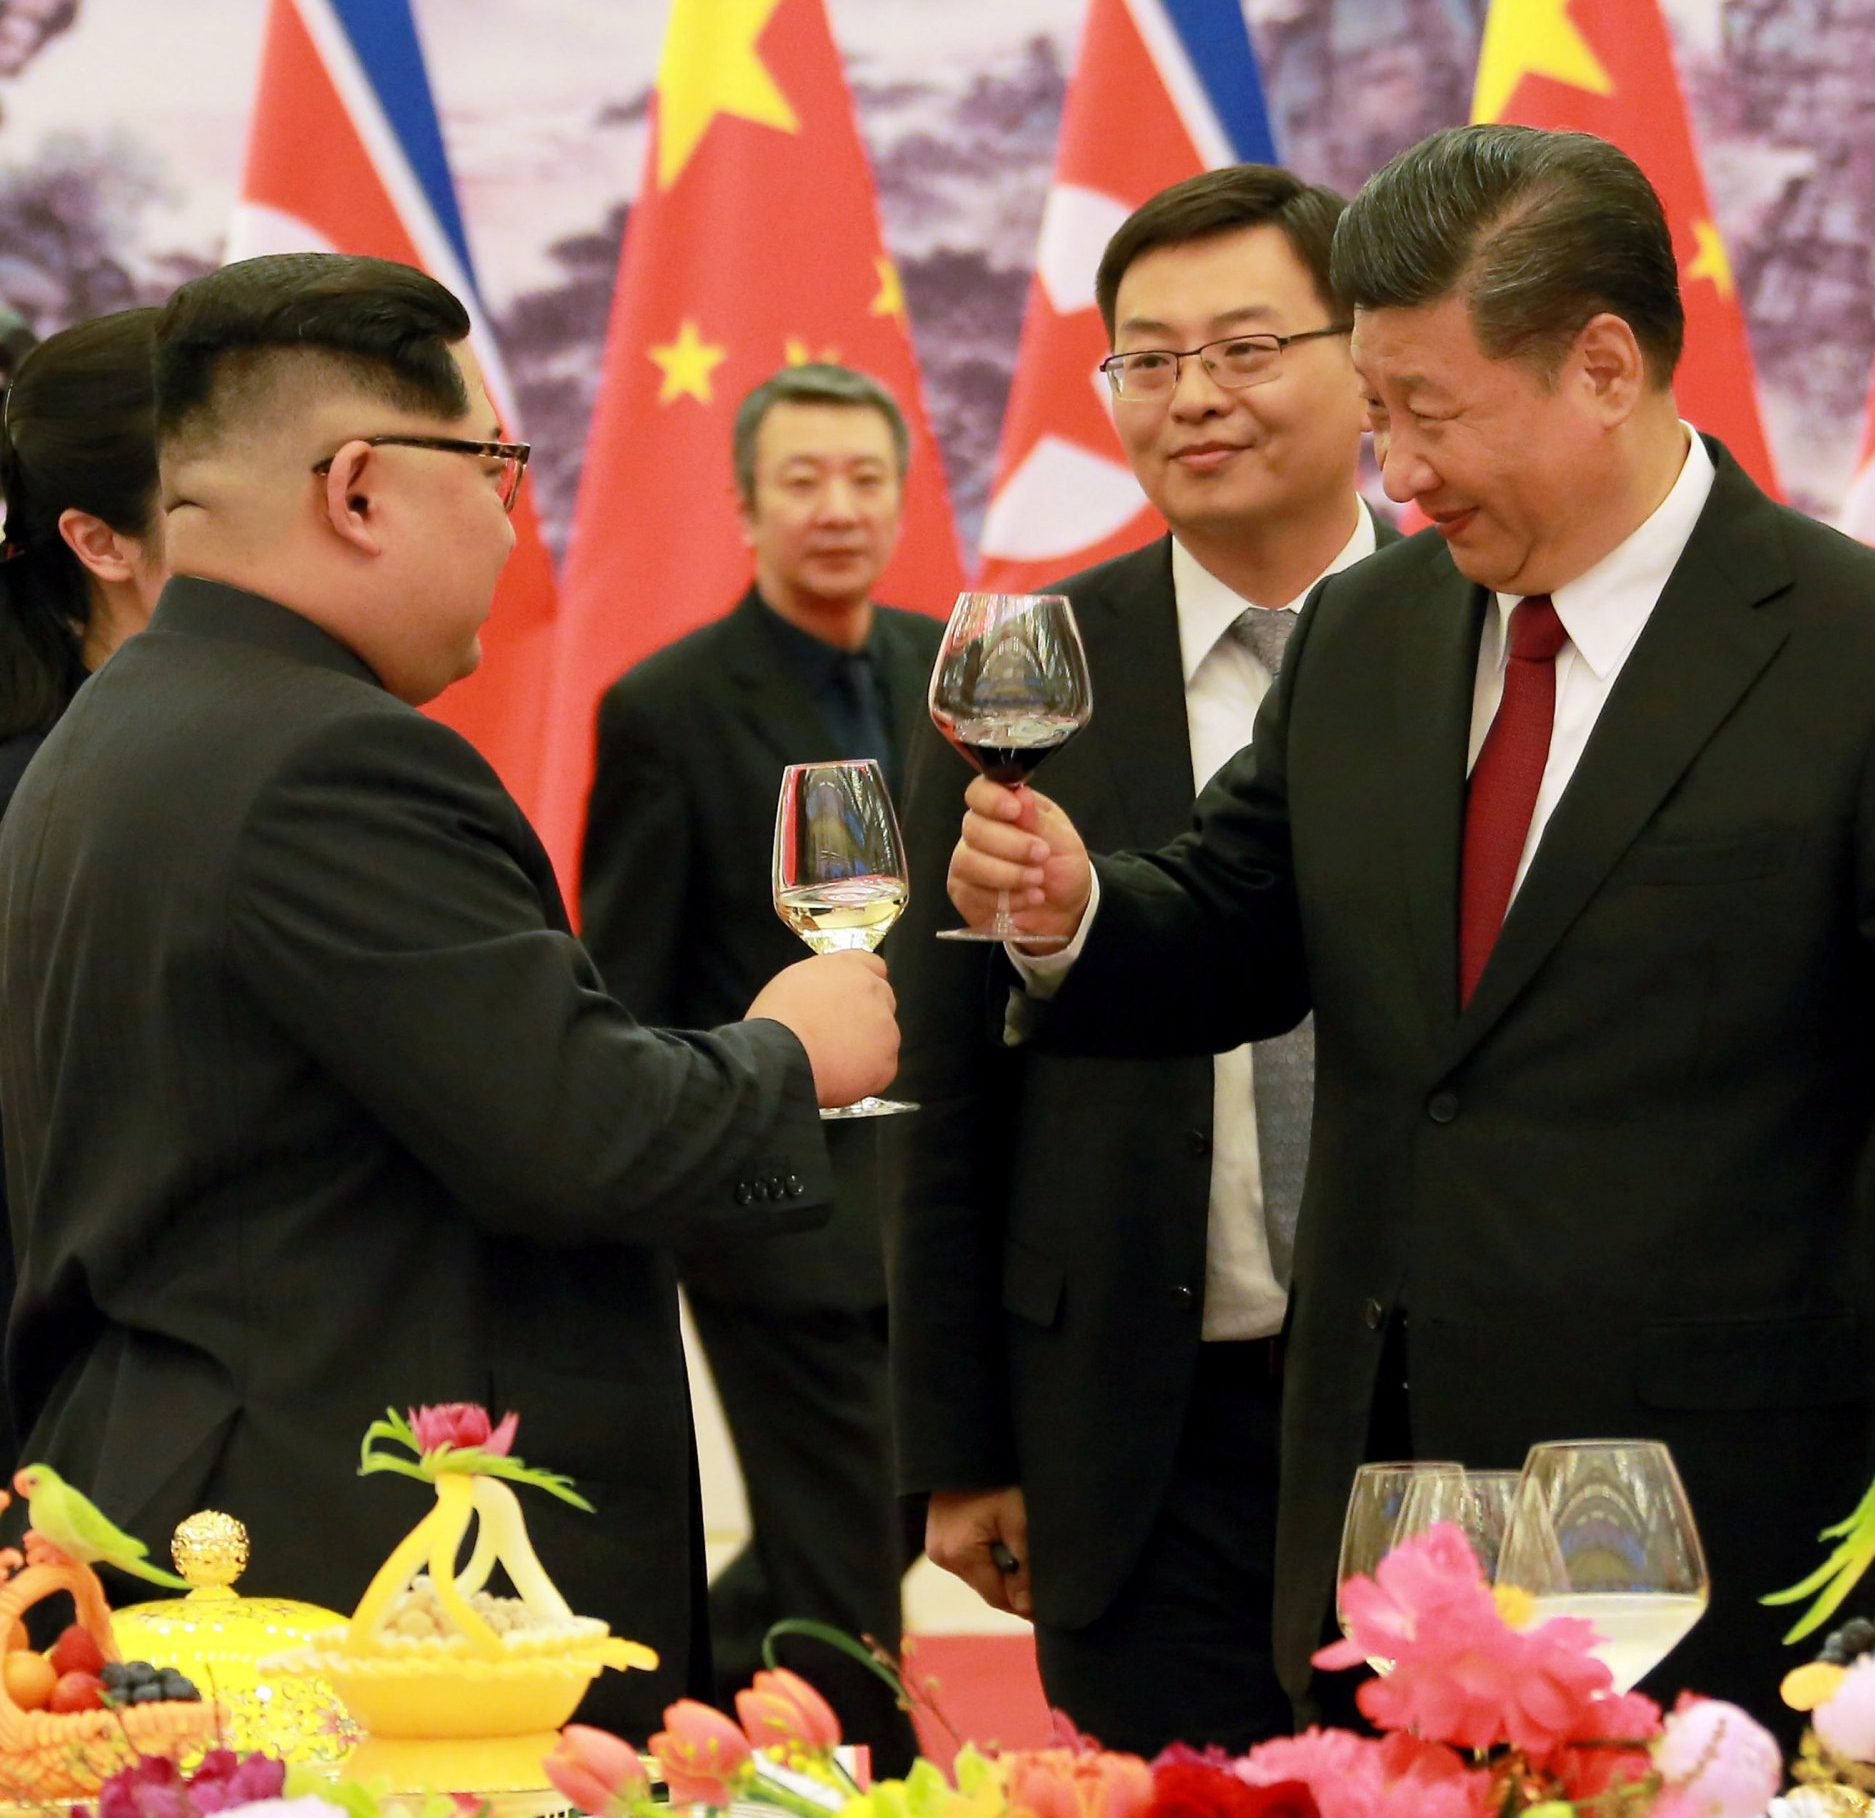 REFILE - ADDING CITY North Korean leader Kim Jong Un toasts with Chinese President Xi Jinping, as he paid an unofficial visit to Beijing, China, in this undated photo released by North Korea's Korean Central News Agency (KCNA) in Pyongyang March 28,2018. KCNA/via Reuters ATTENTION EDITORS - THIS IMAGE WAS PROVIDED BY A THIRD PARTY. REUTERS IS UNABLE TO INDEPENDENTLY VERIFY THIS IMAGE. NO THIRD PARTY SALES. NOT FOR USE BY REUTERS THIRD PARTY DISTRIBUTORS. SOUTH KOREA OUT. NO COMMERCIAL OR EDITORIAL SALES IN SOUTH KOREA.